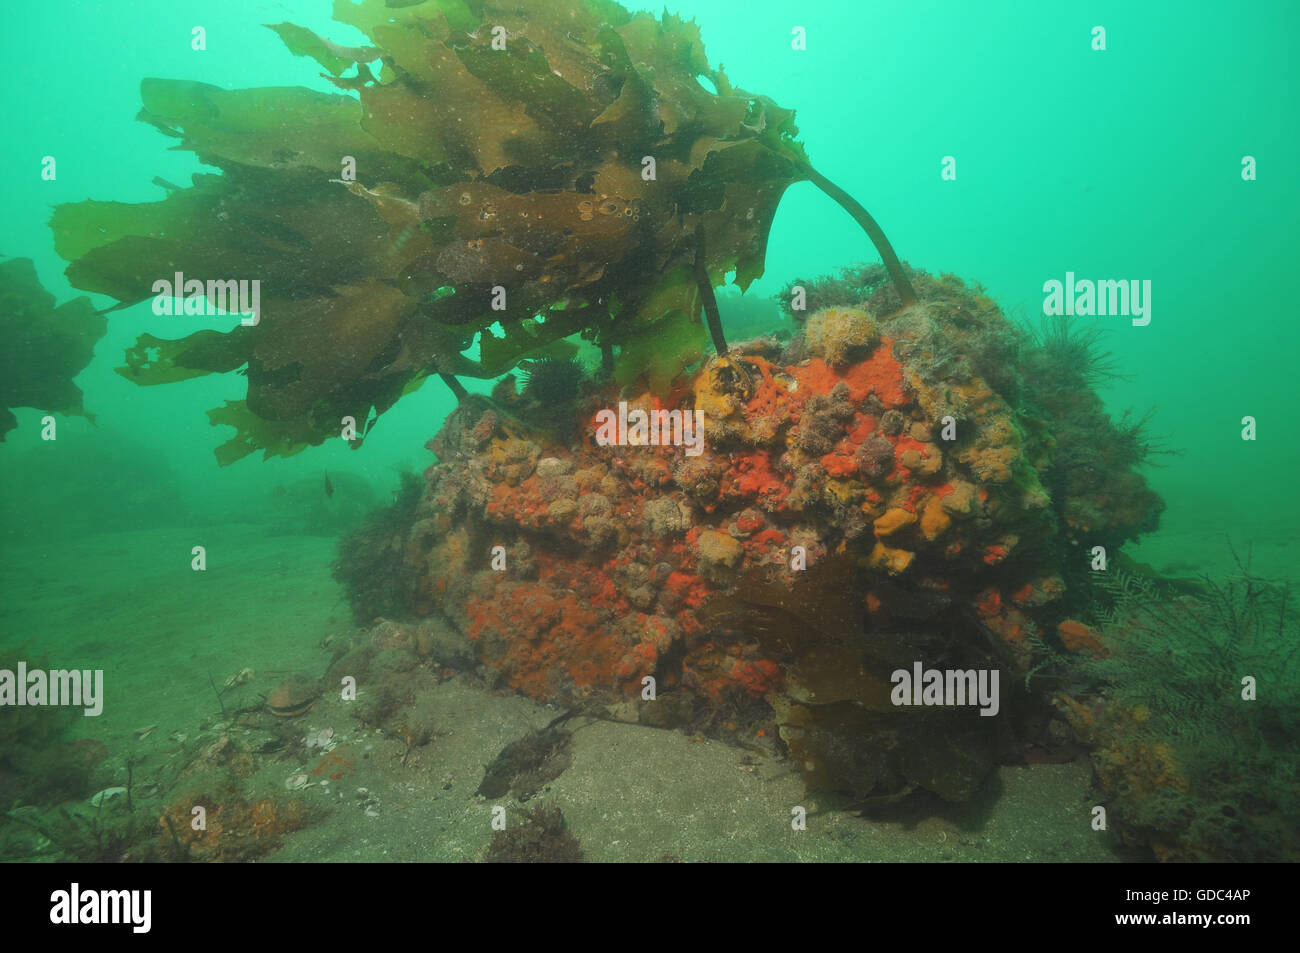 Rock with colourful invertebrate life in dim light. - Stock Image